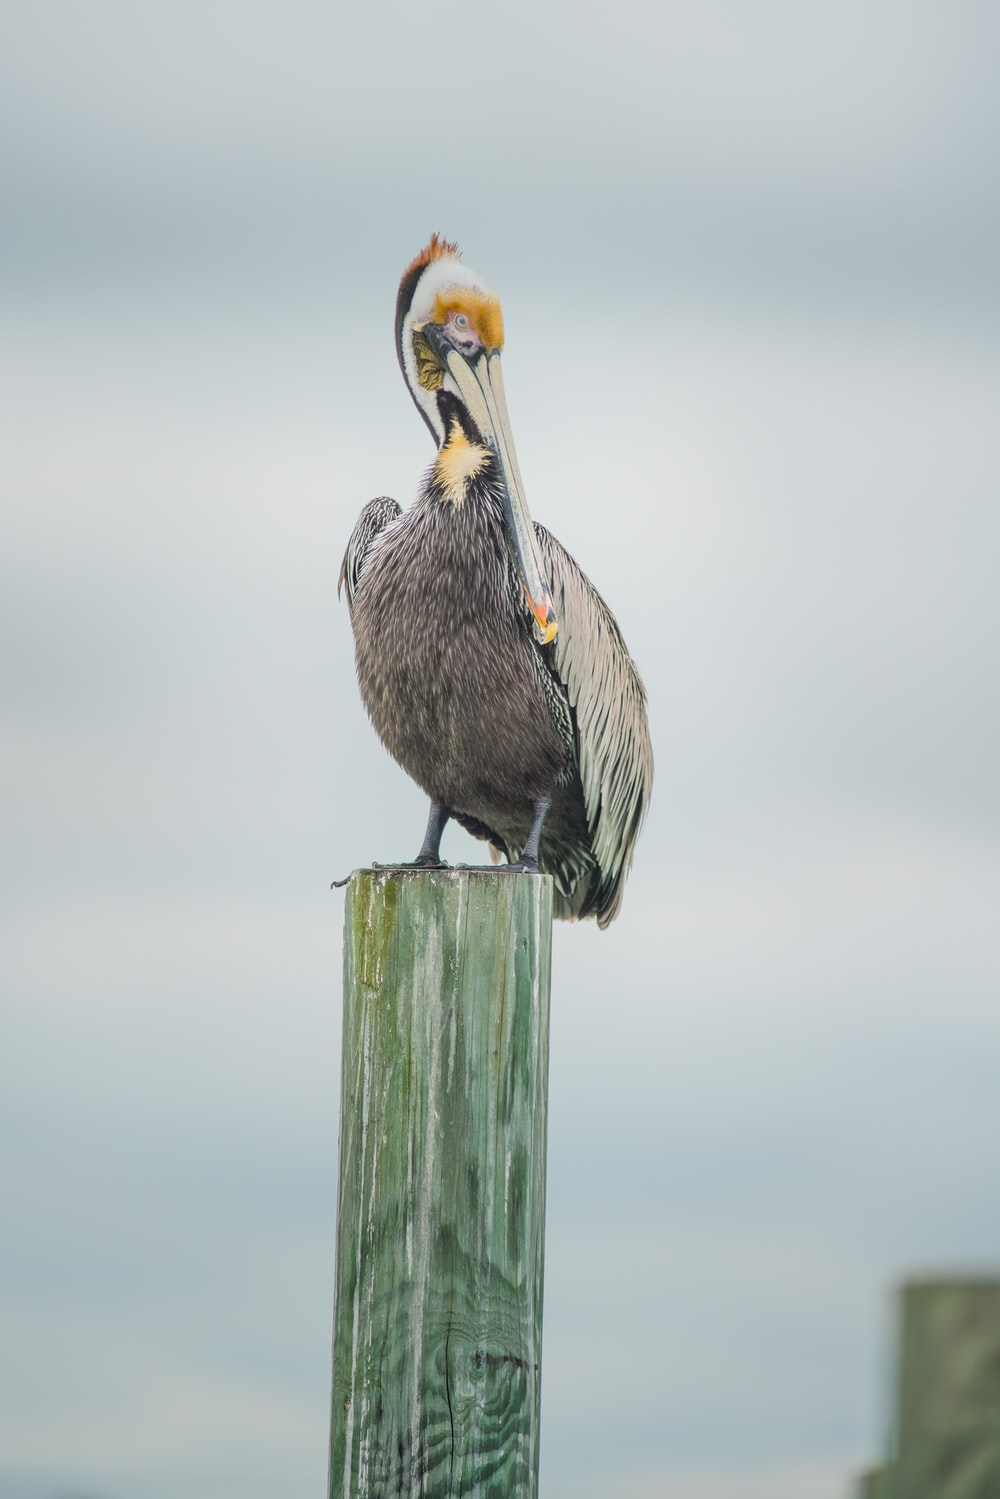 brown pelican on brown wooden post during daytime